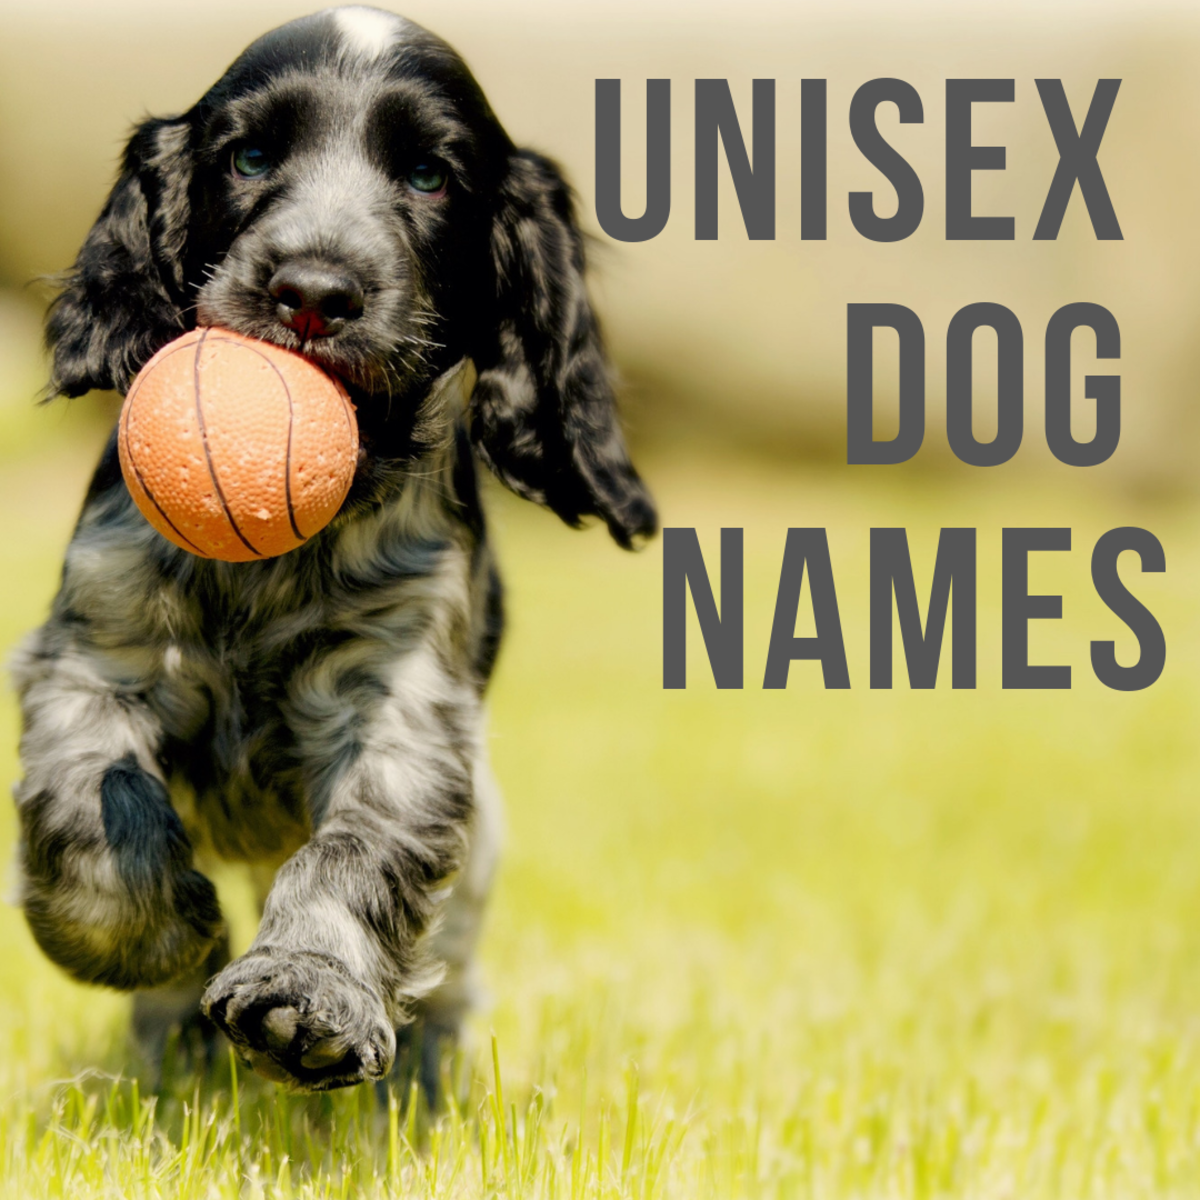 Gender-Neutral Dog Names